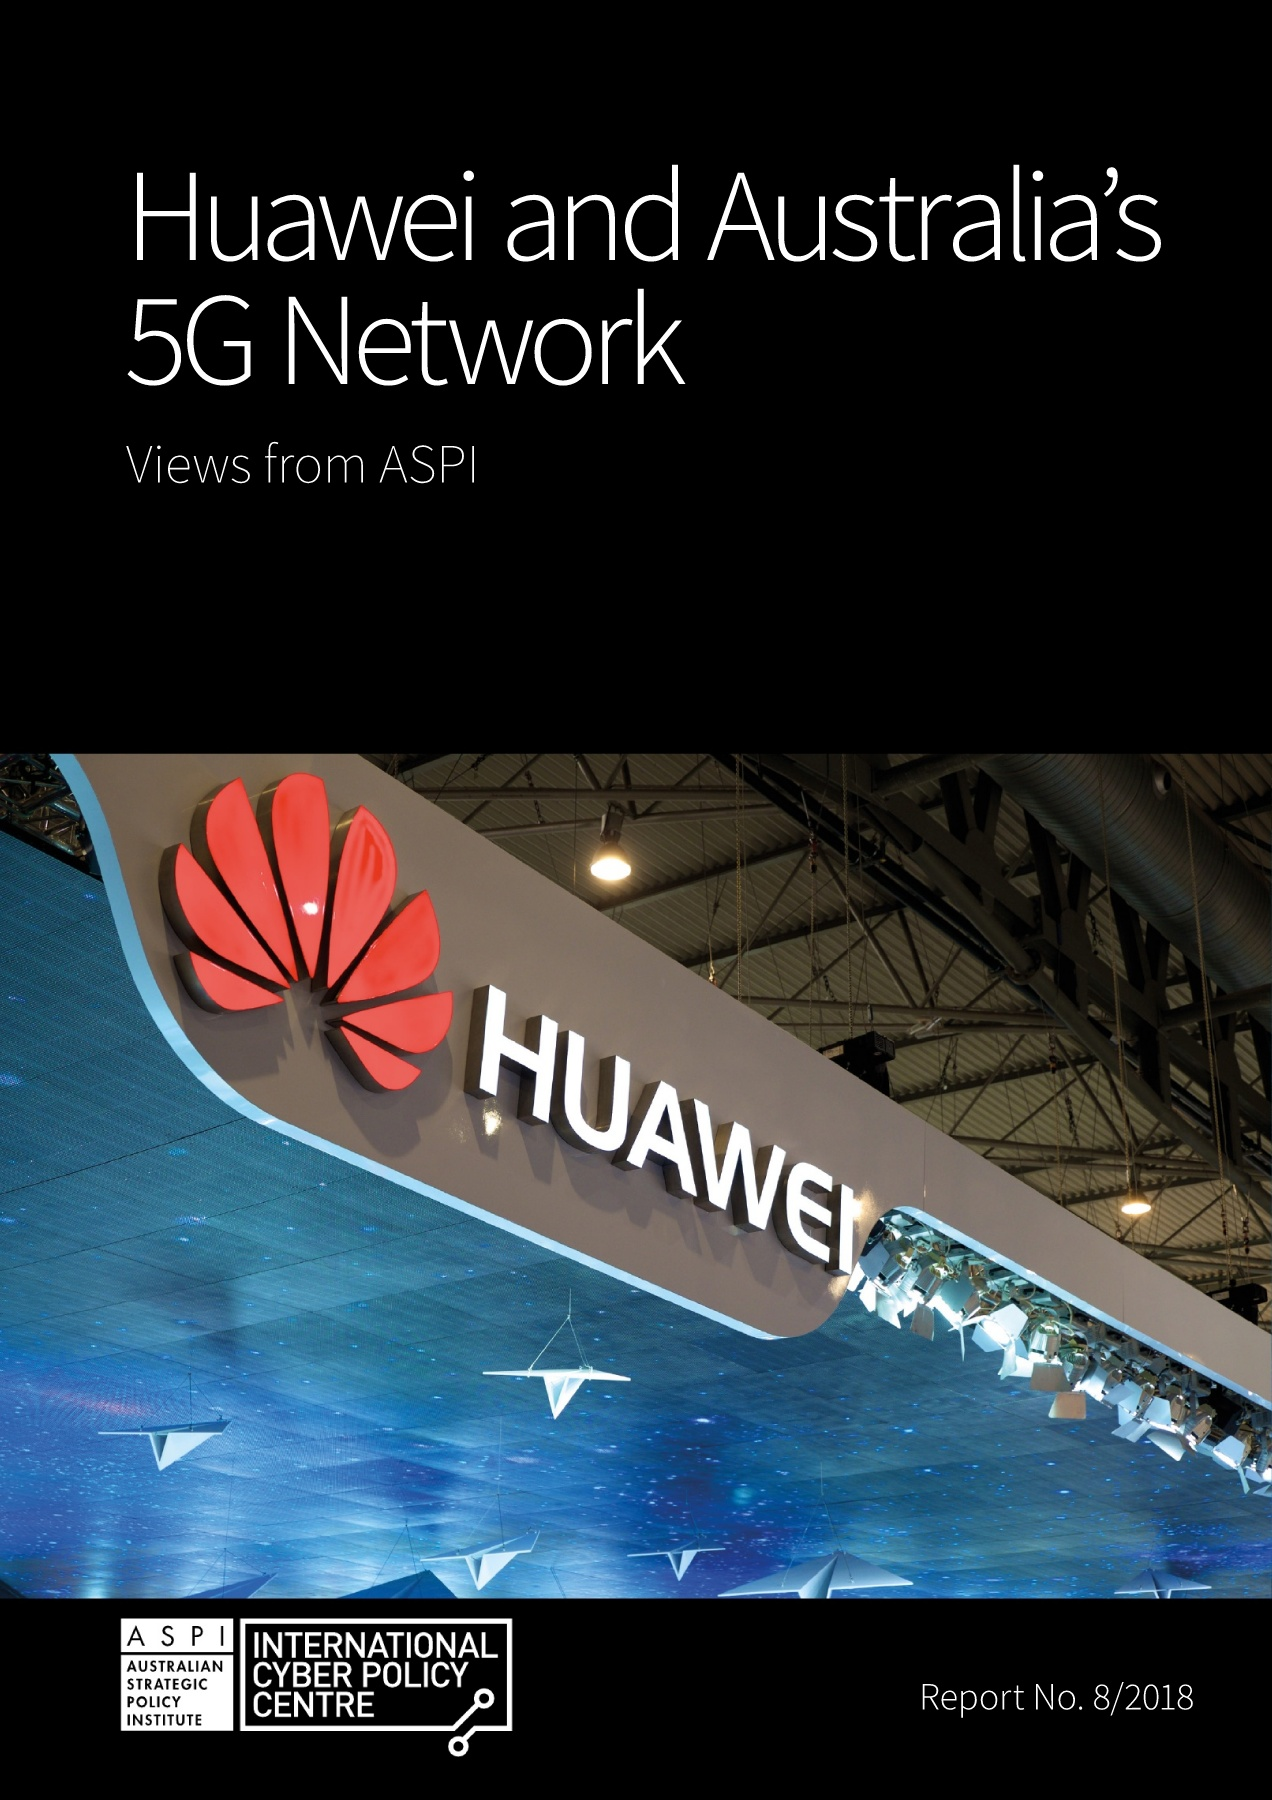 Huawei and Australias 5G Network